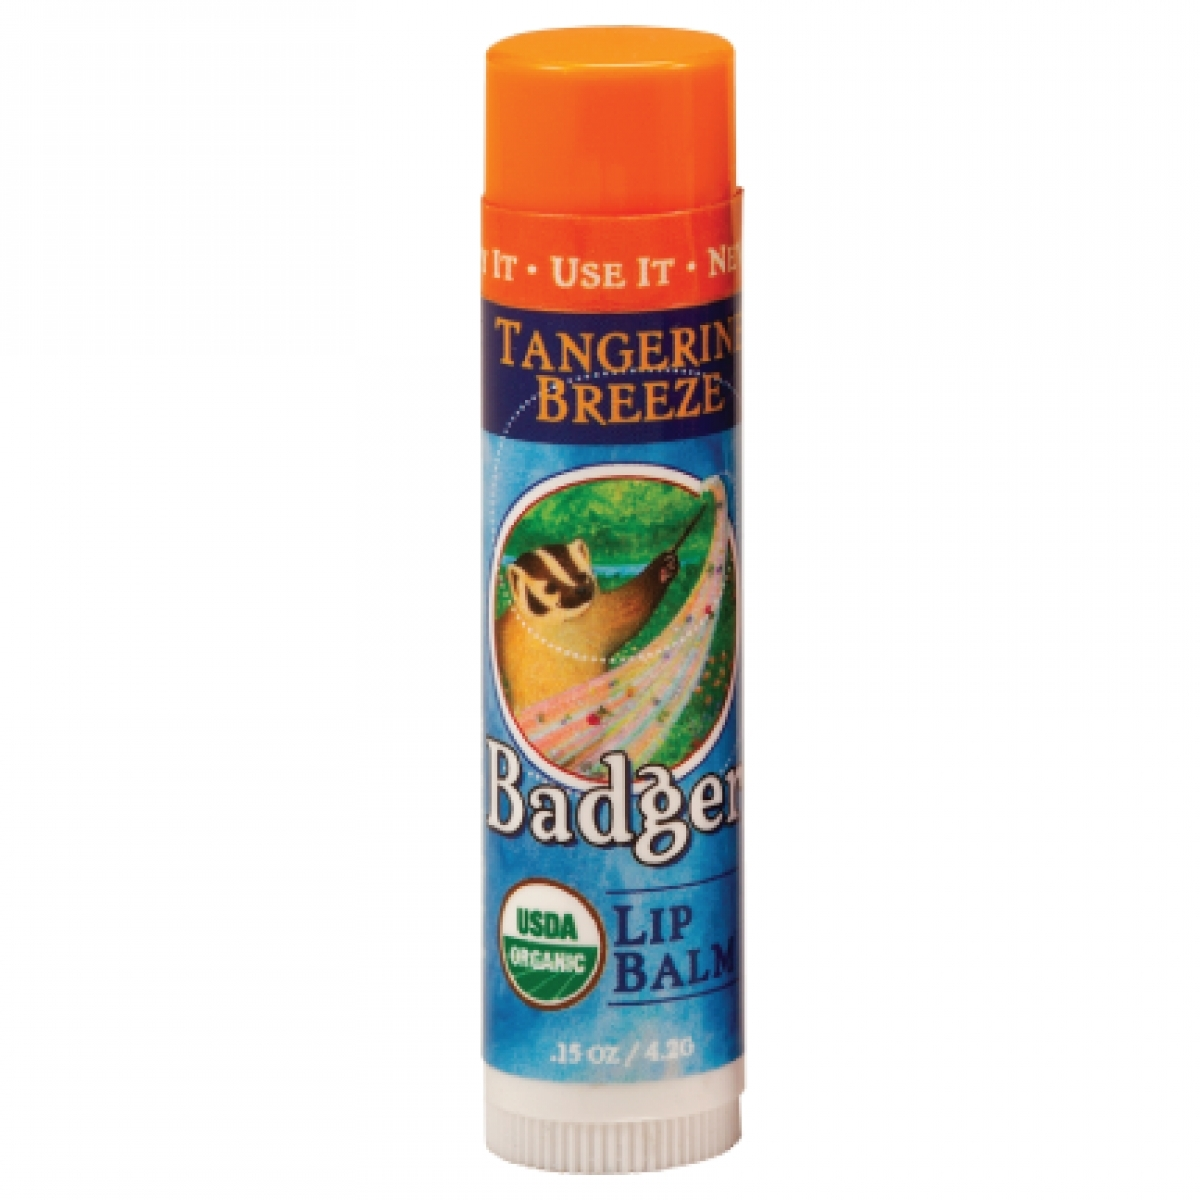 Badger Tangerine Breeze Lip Balm (0.15oz)